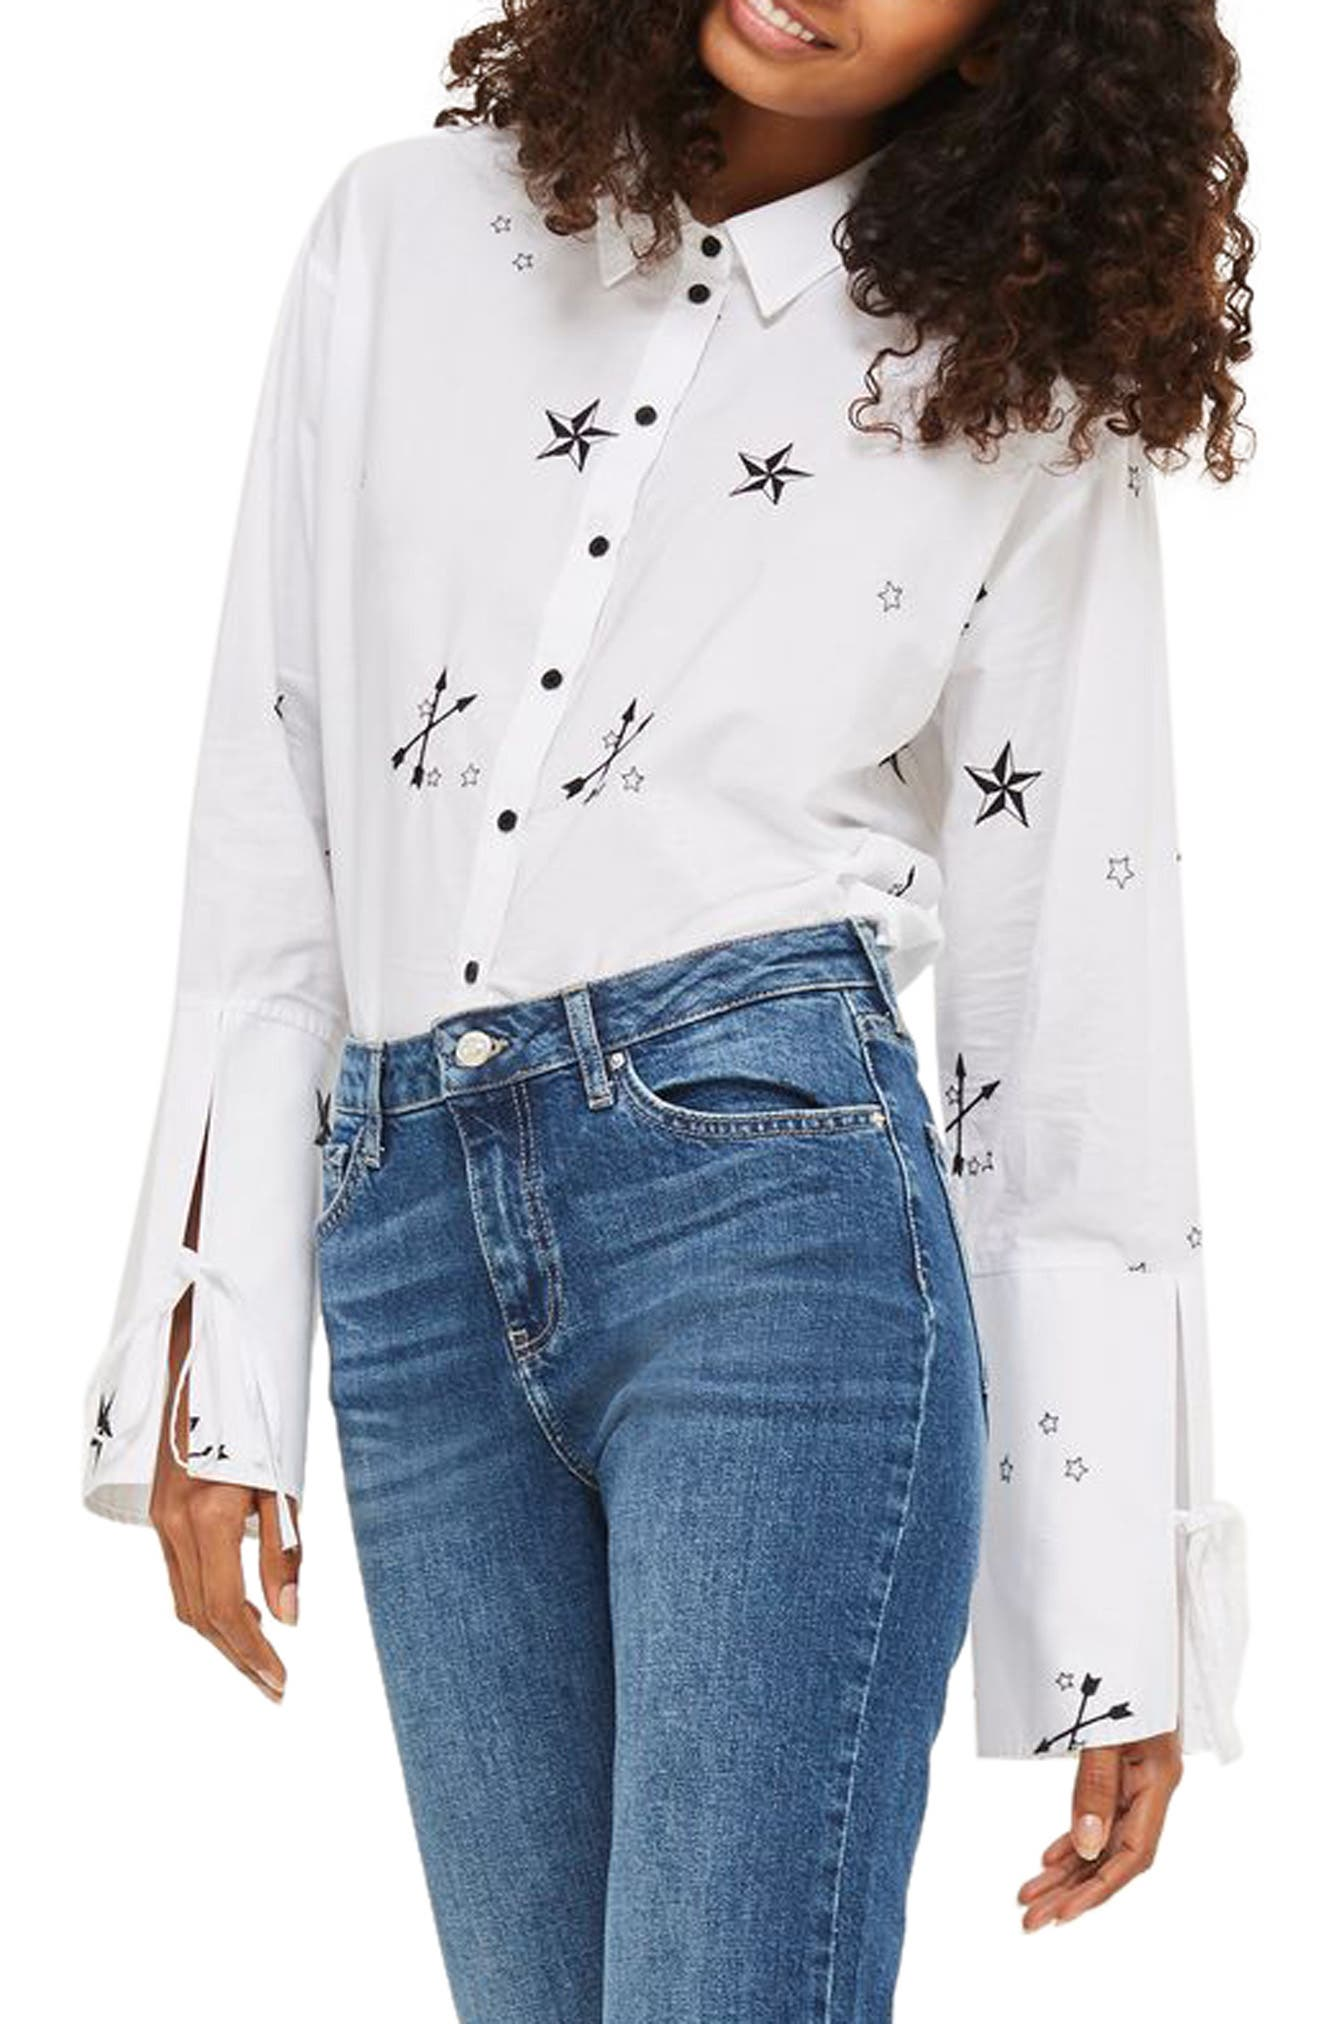 Topshop Star Embroidered Shirt